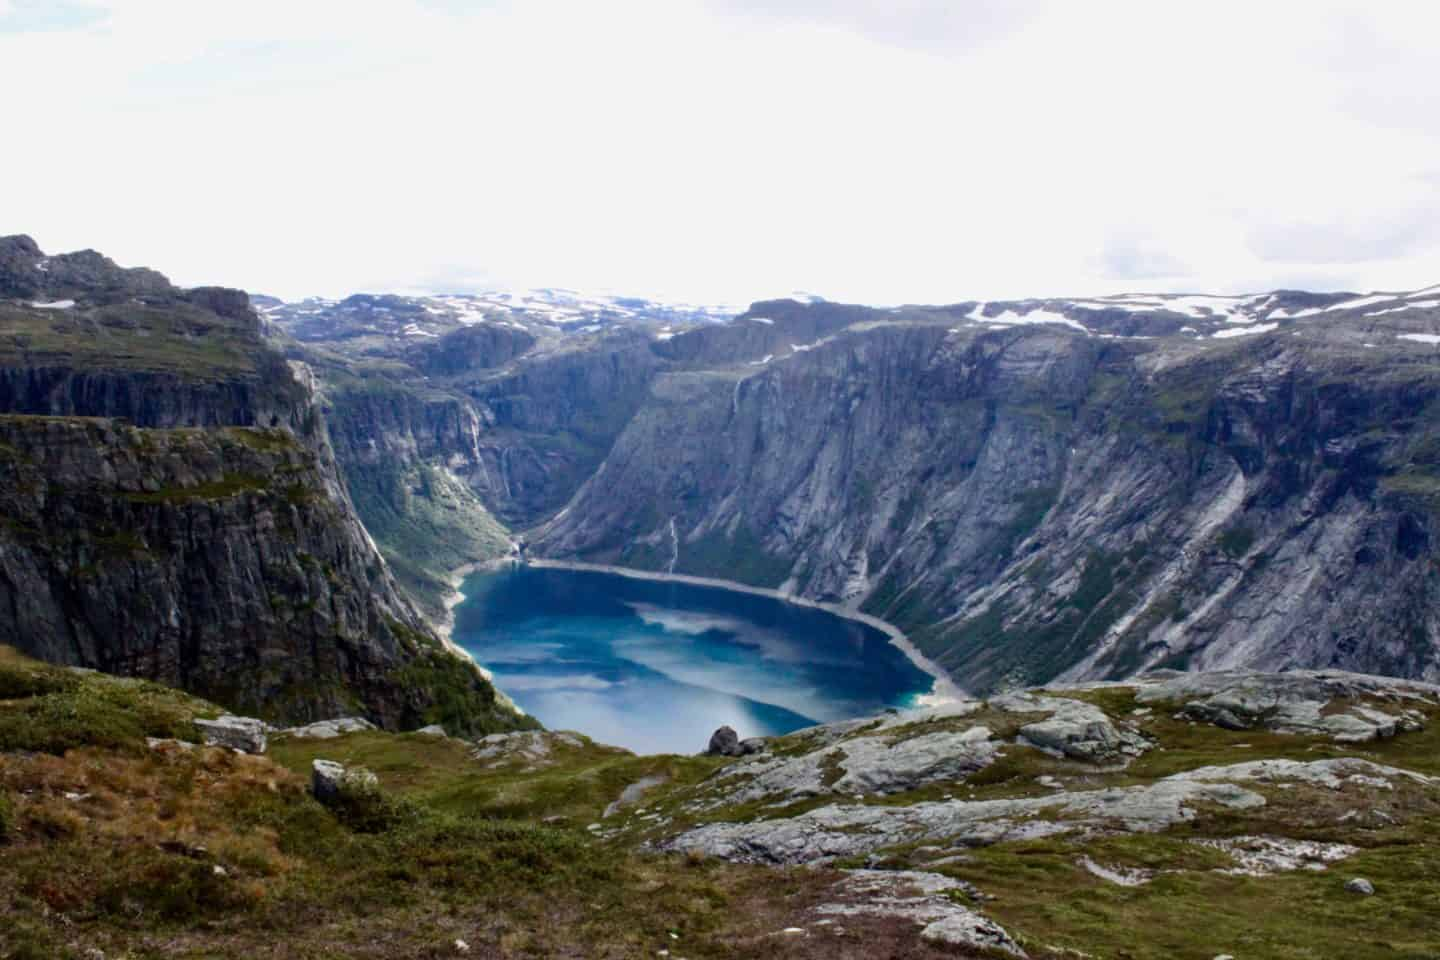 Stunning scenery along the Trolltunga route